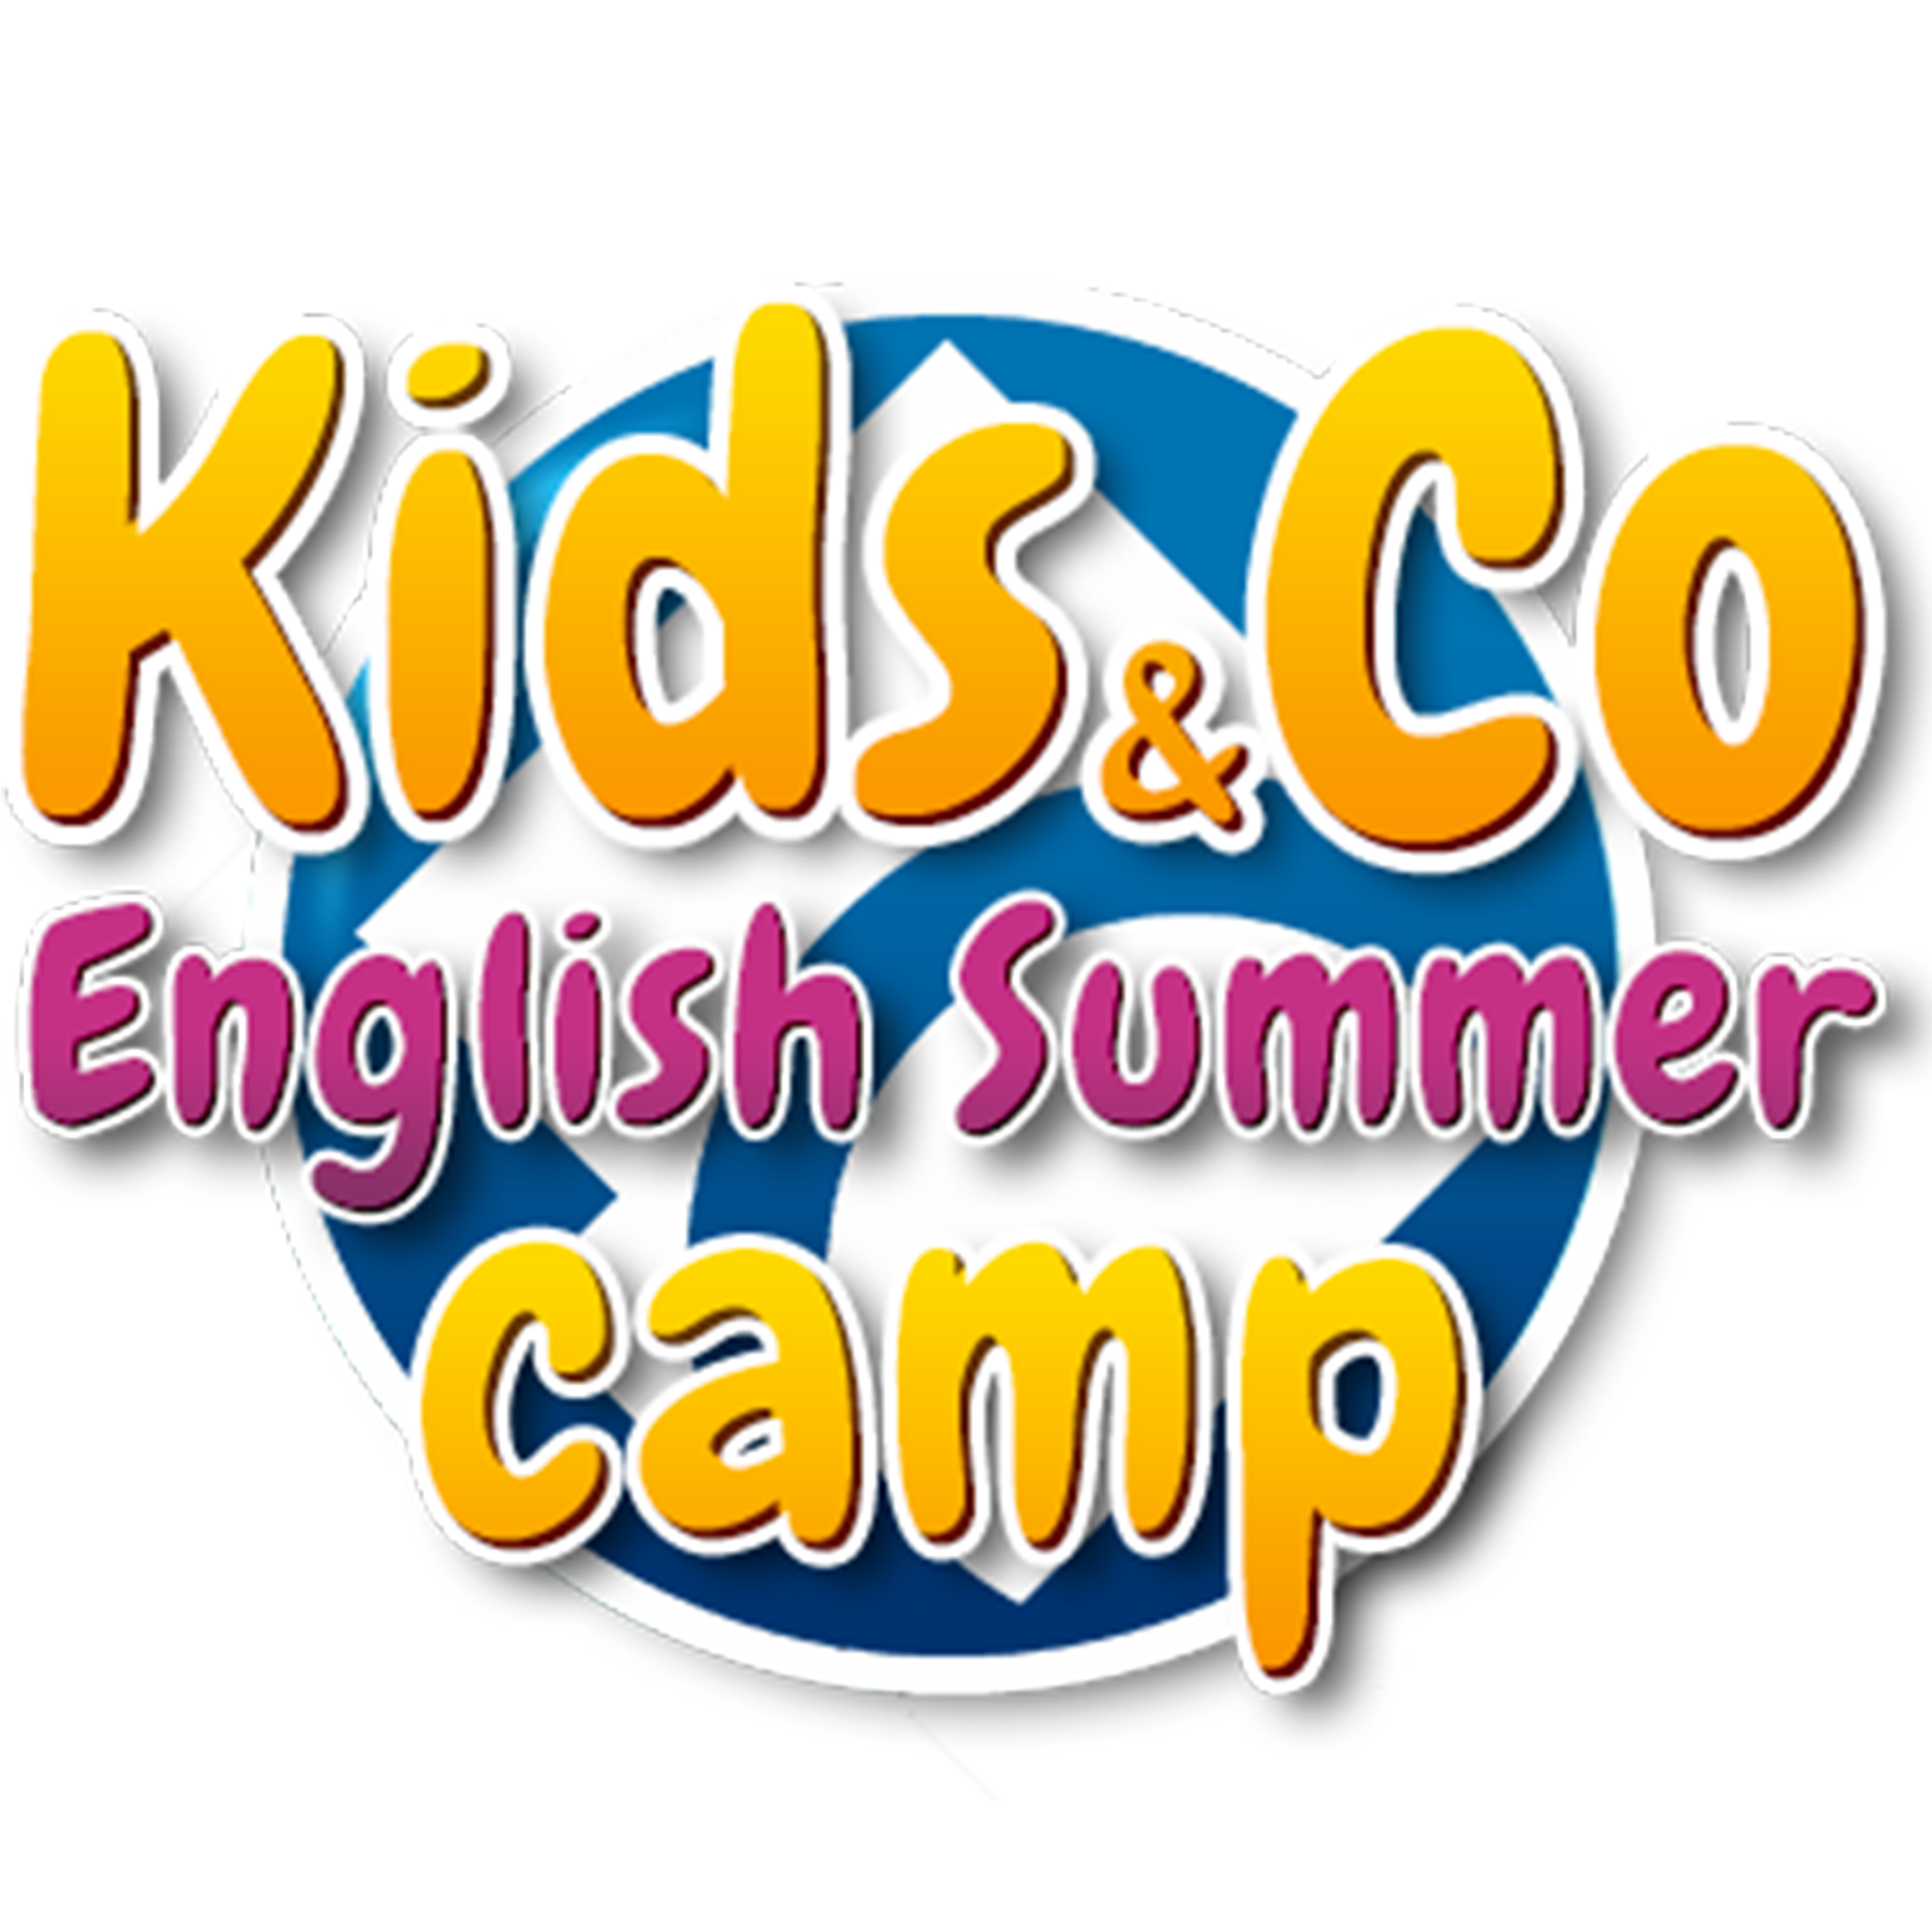 kids&Co_LC_Milano_inglese